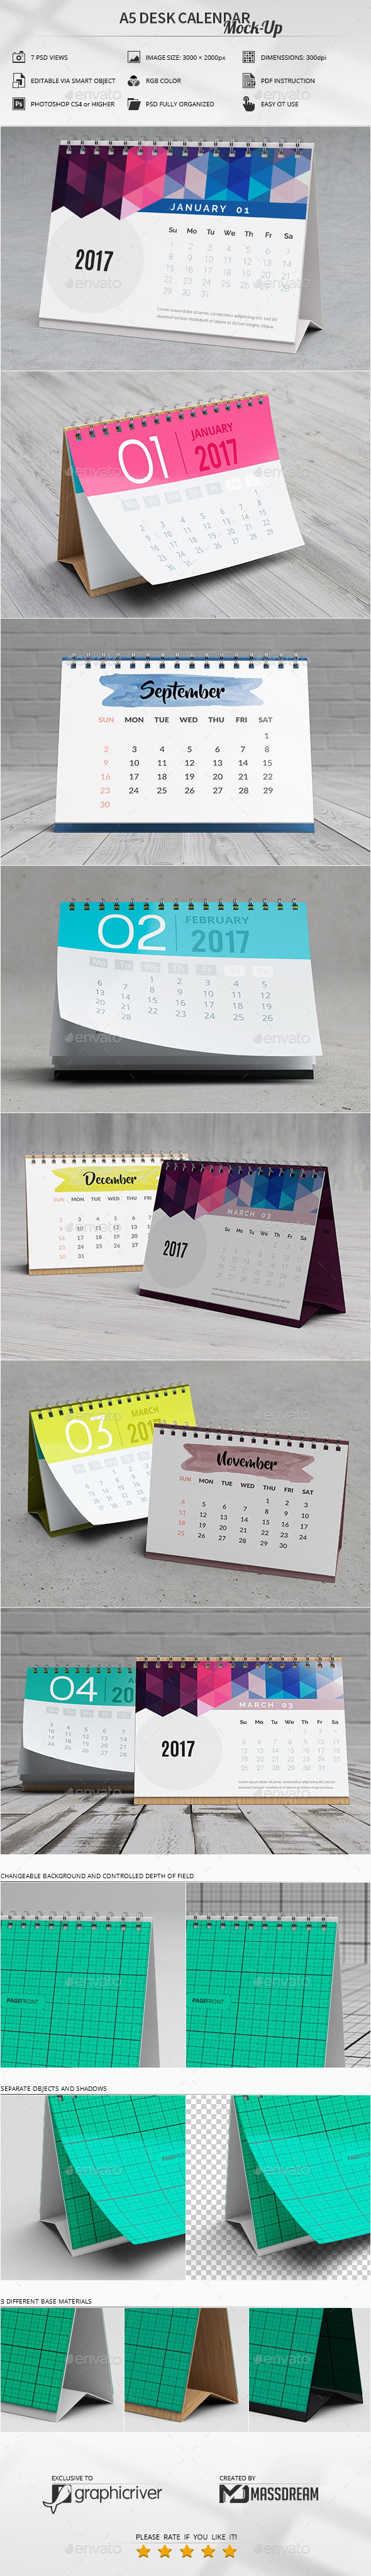 GraphicRiver A5 Desk Calendar Mock-Up 20783389